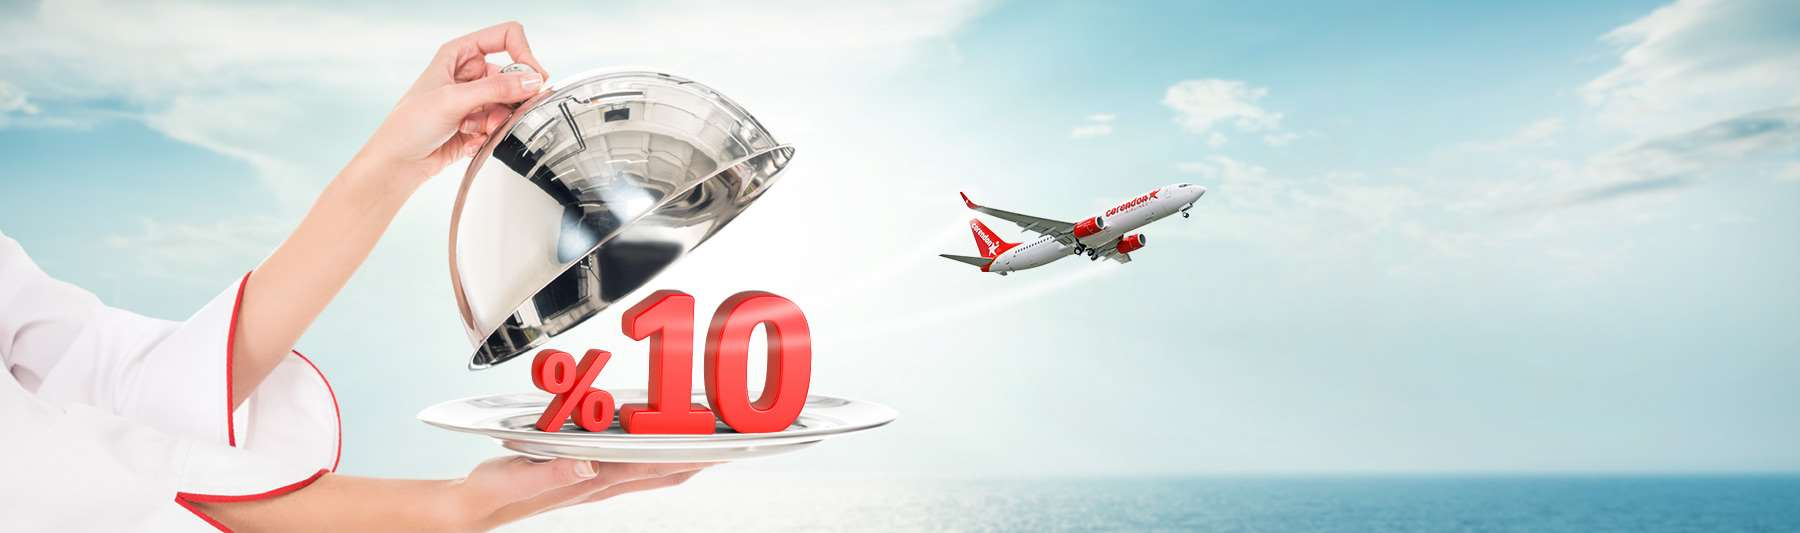 10% off all tickets at corendonairlines.com with discount code MC2021